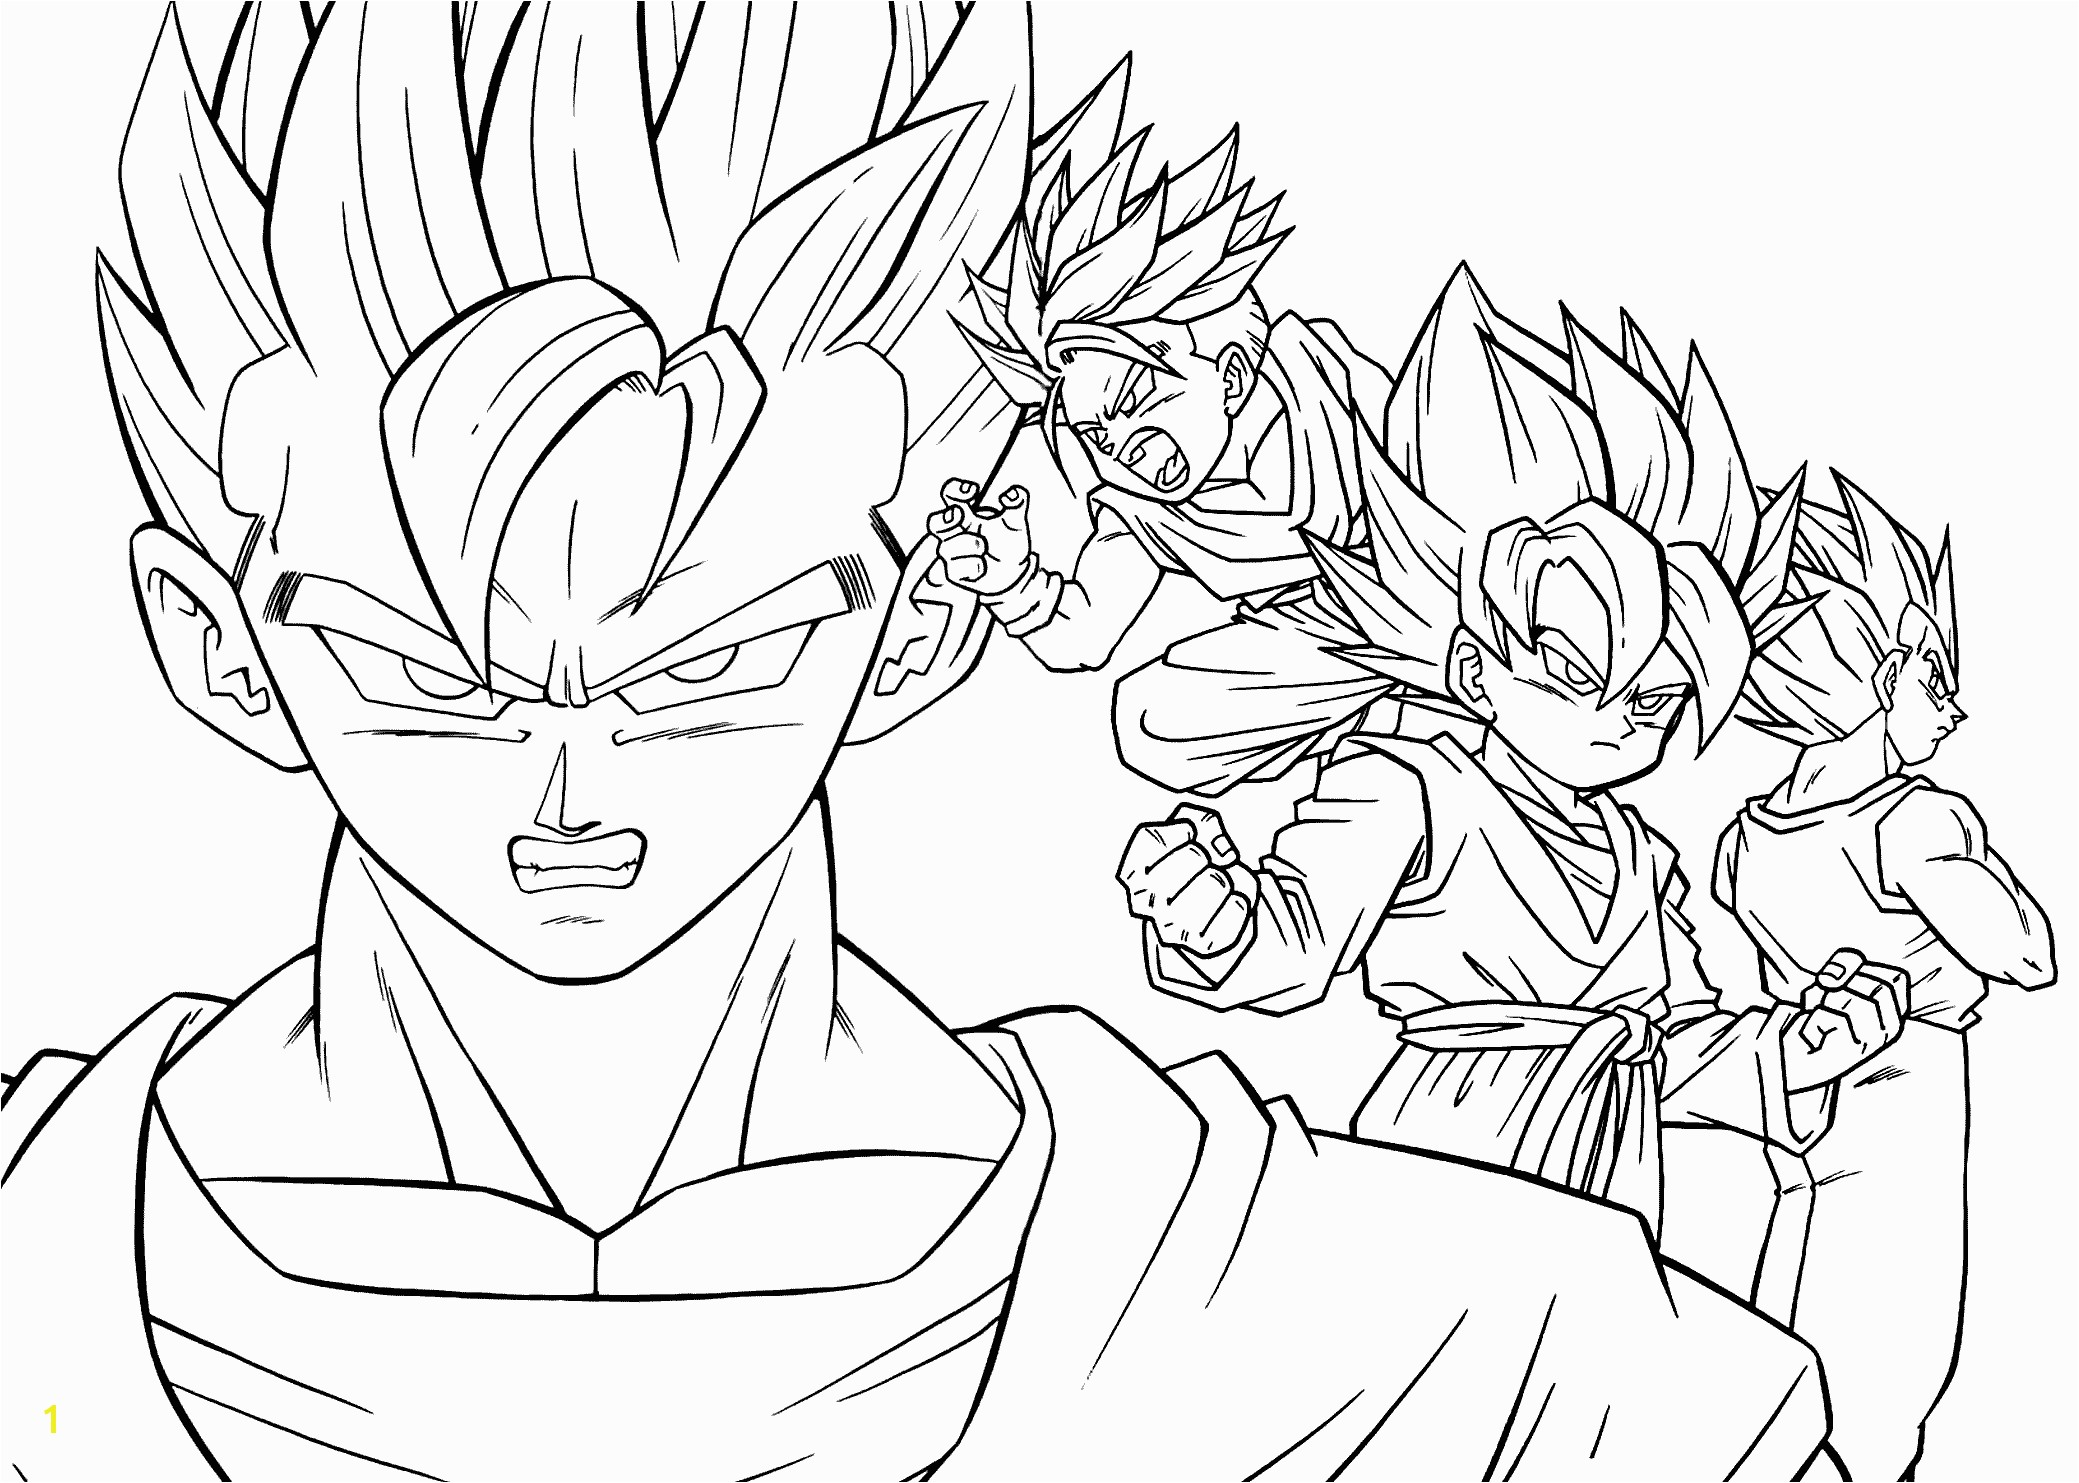 Dragon Ball Z Coloring Pages Ve a And Goku Printable Dbz coloring pages for adults